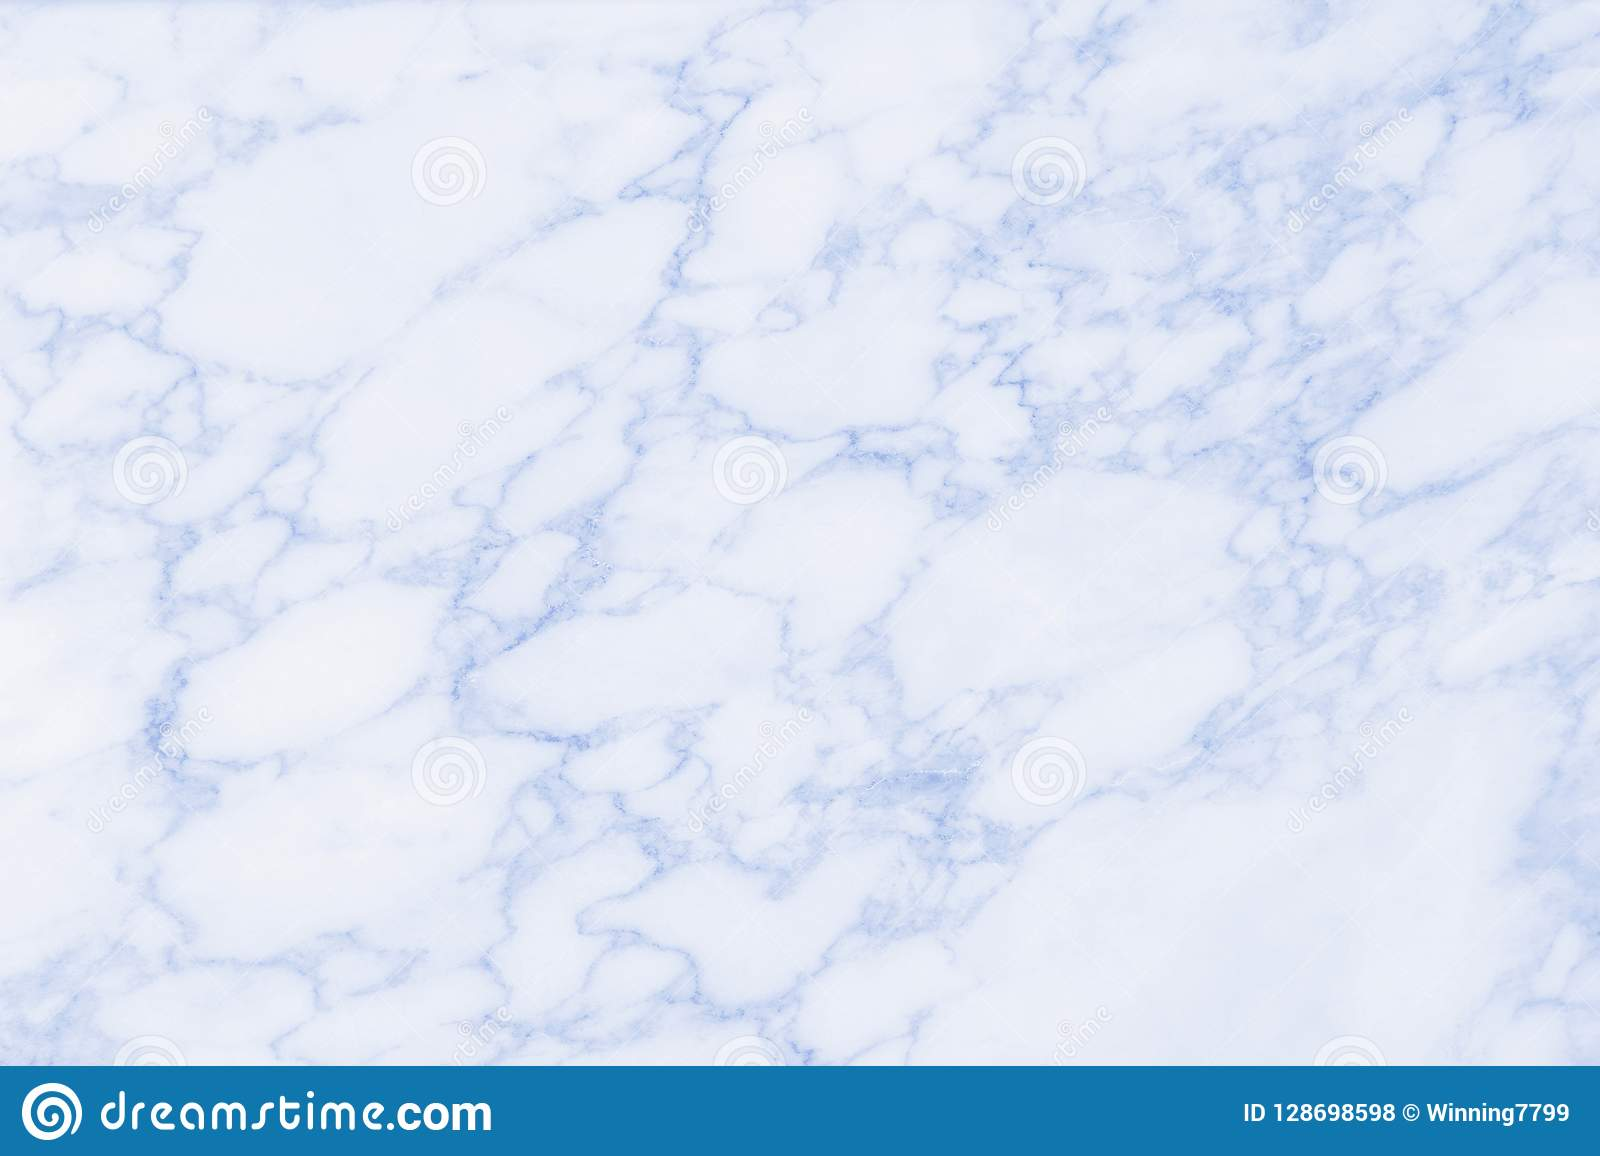 Blue Marble Texture Background Abstract Marble Texture Stock Photo Image Of Plate Kitchen 128698598